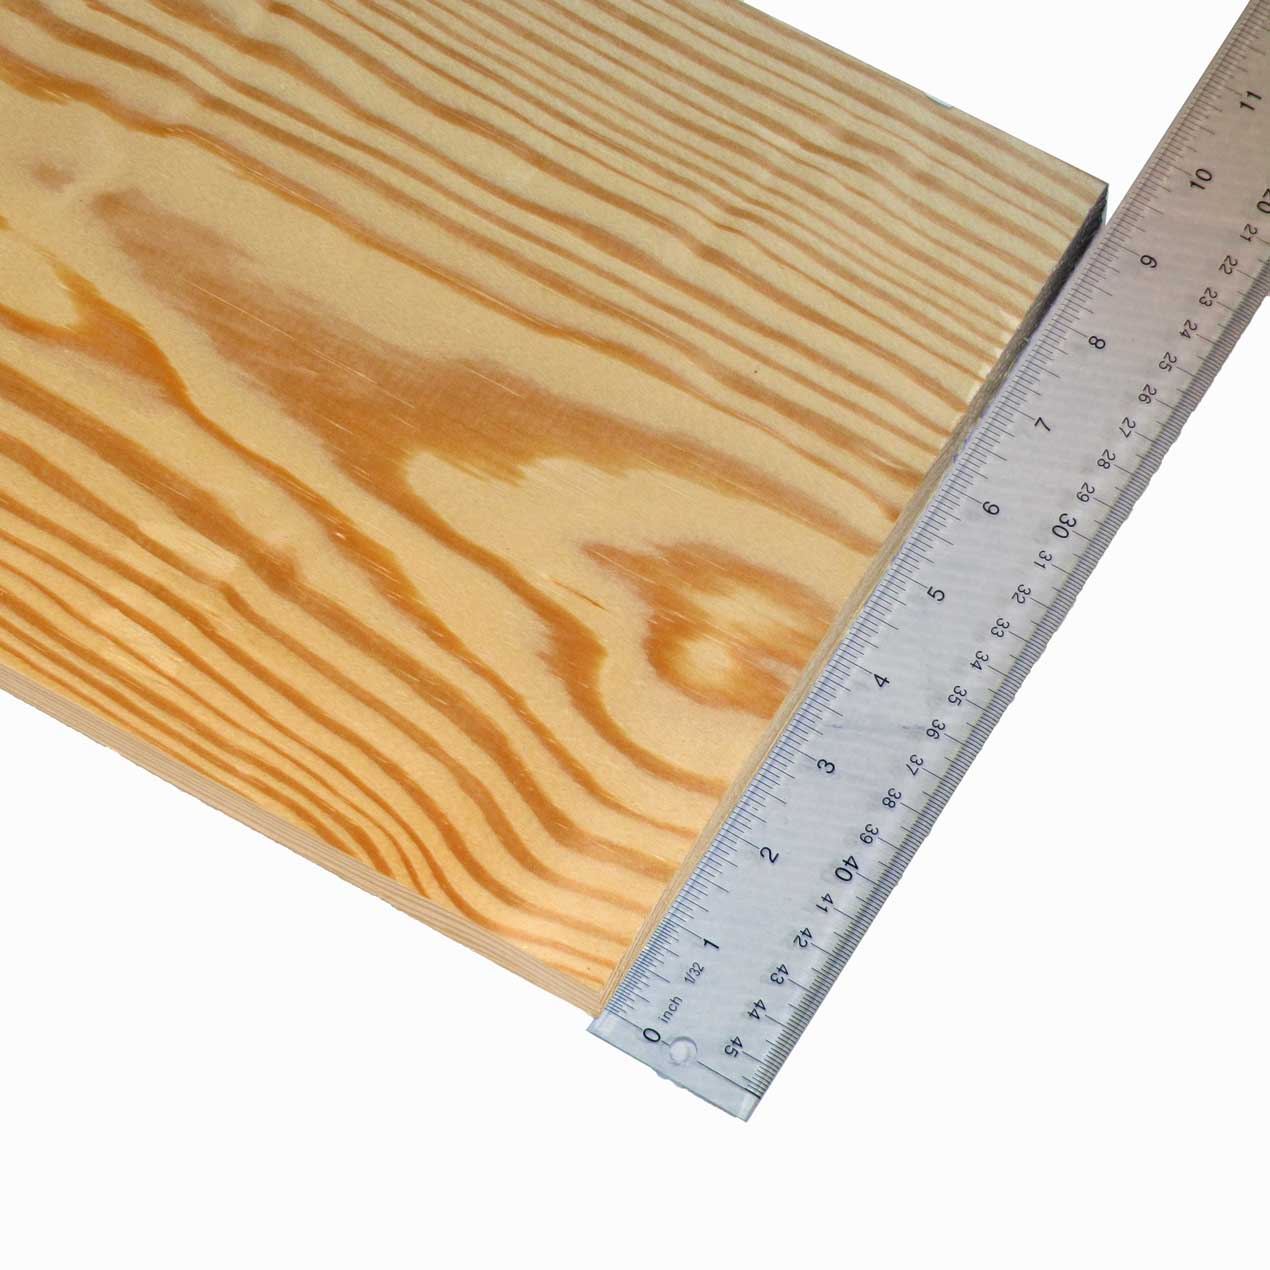 1x10 Clear Yellow Pine Lumber, S4S - Capitol City Lumber